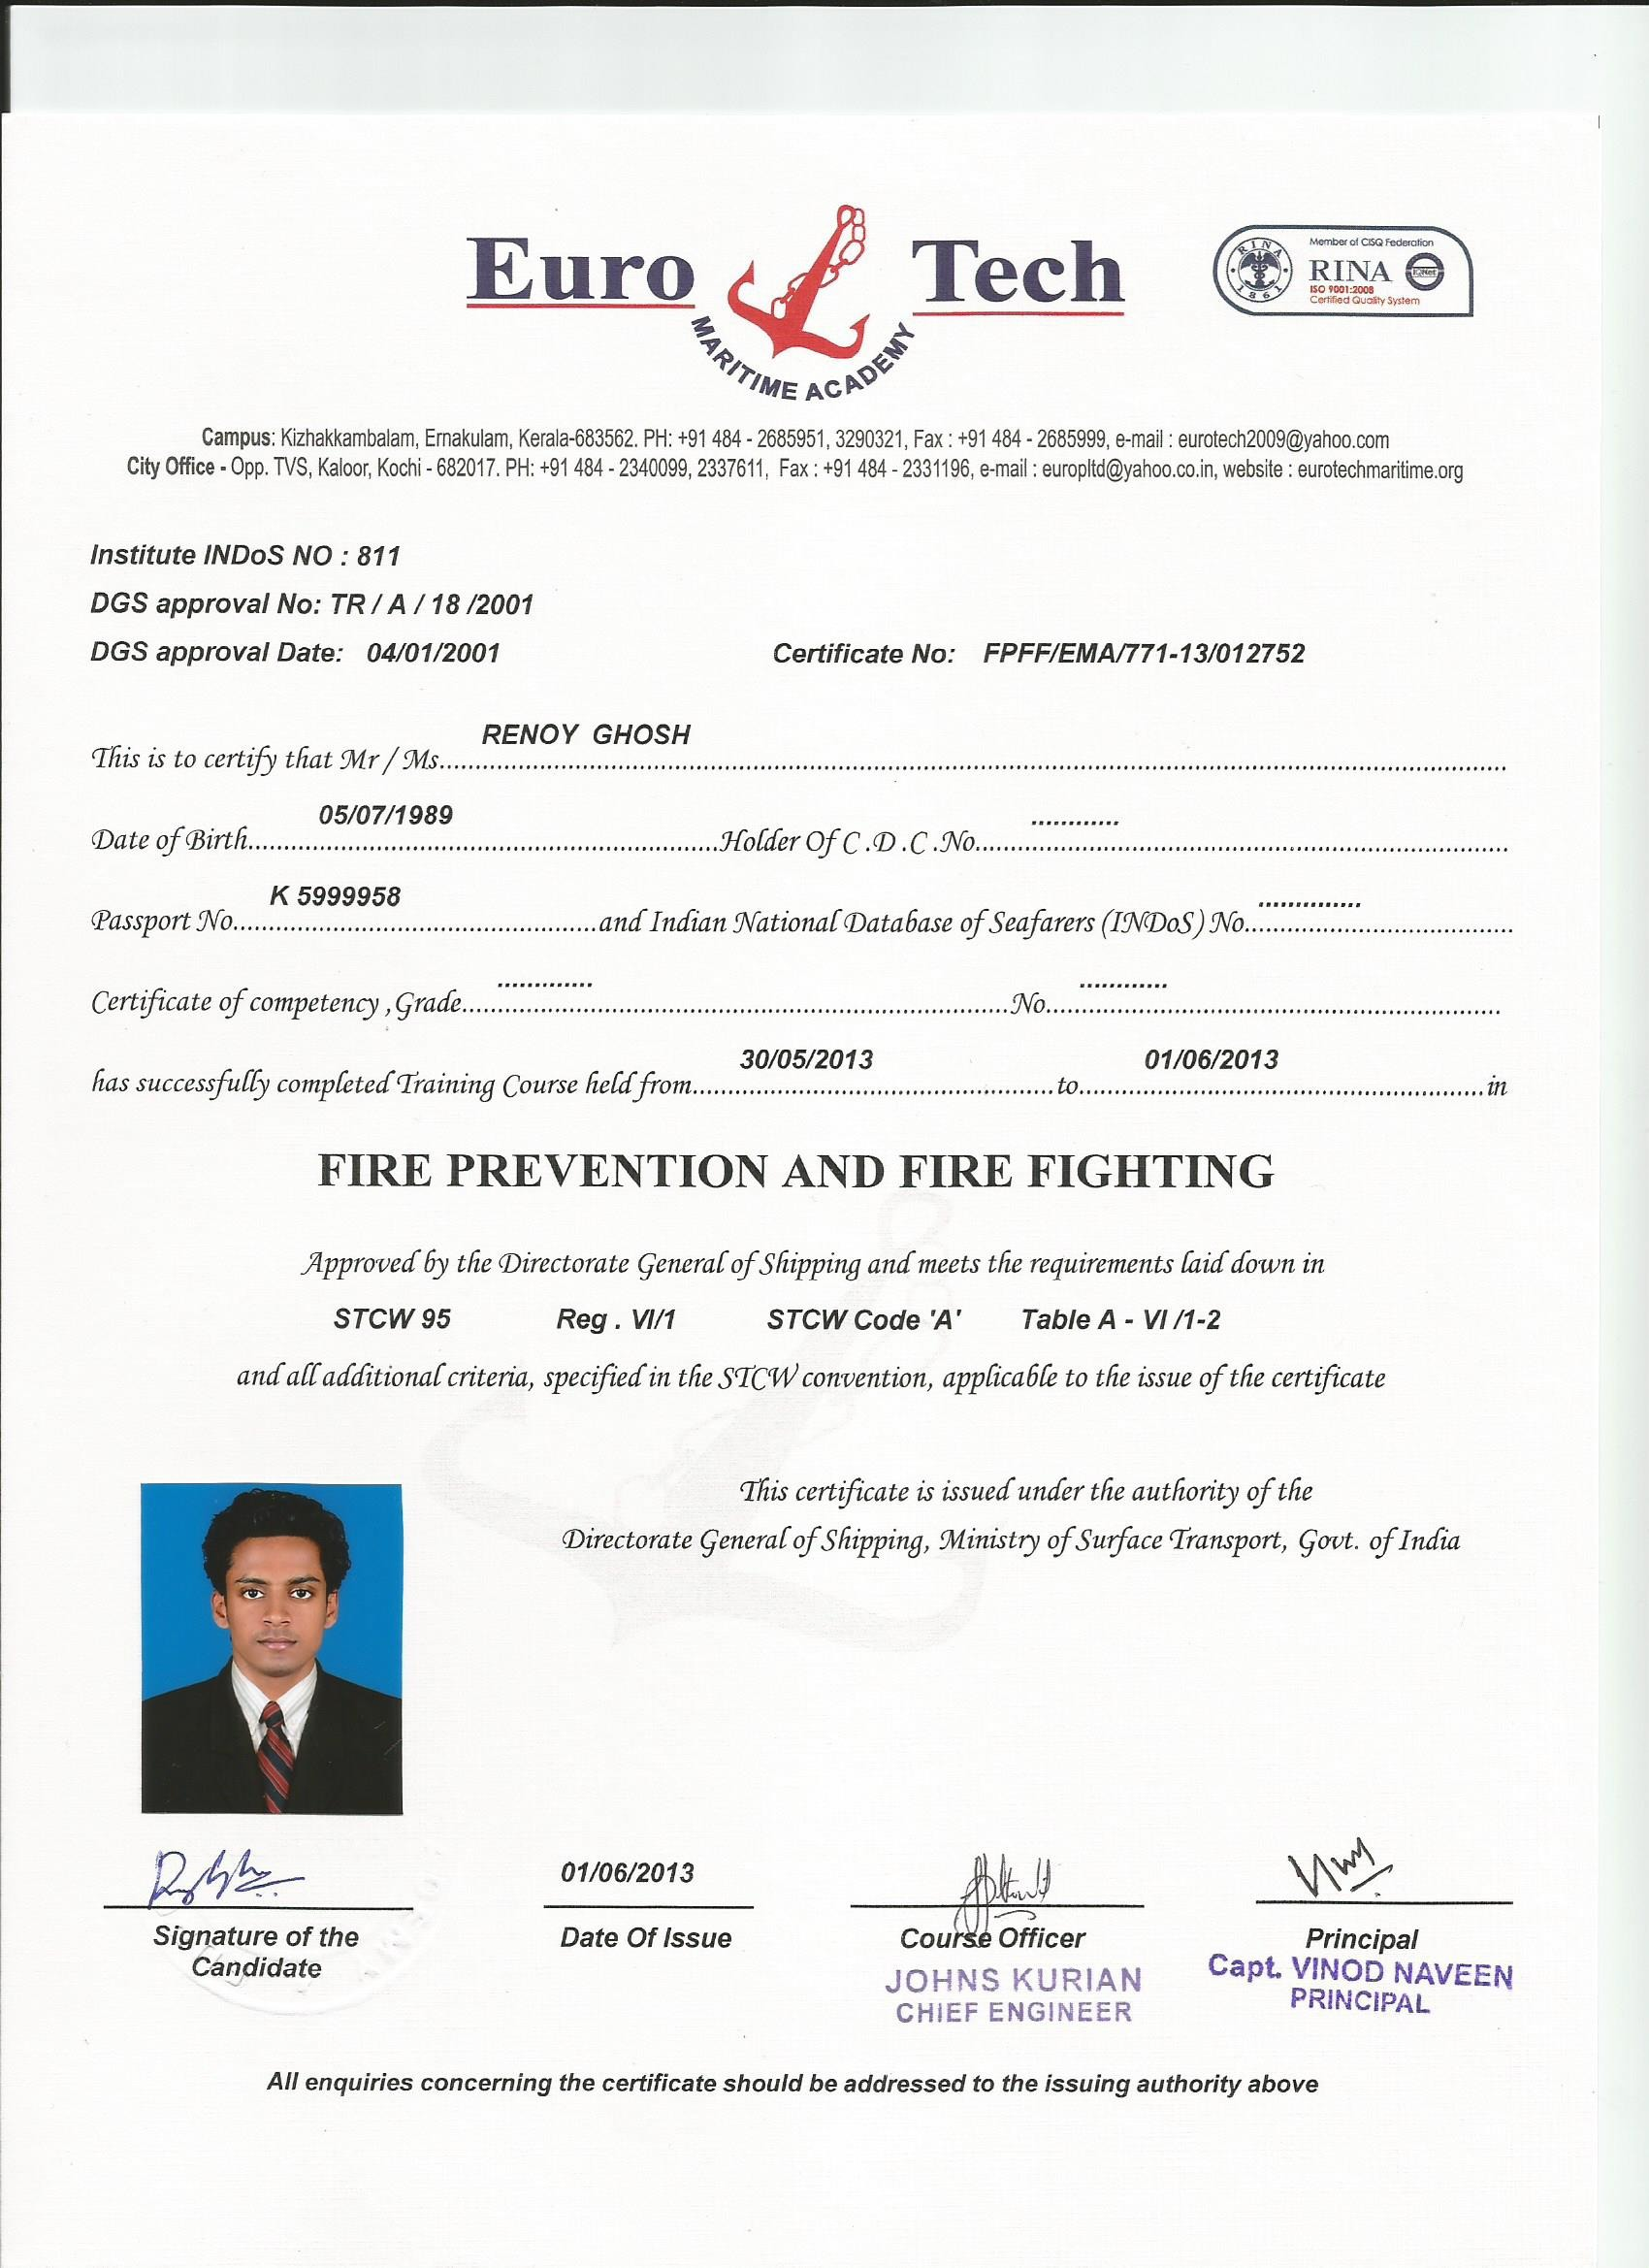 Renoy ghosh bayt stcw 95 certificate 1betcityfo Choice Image